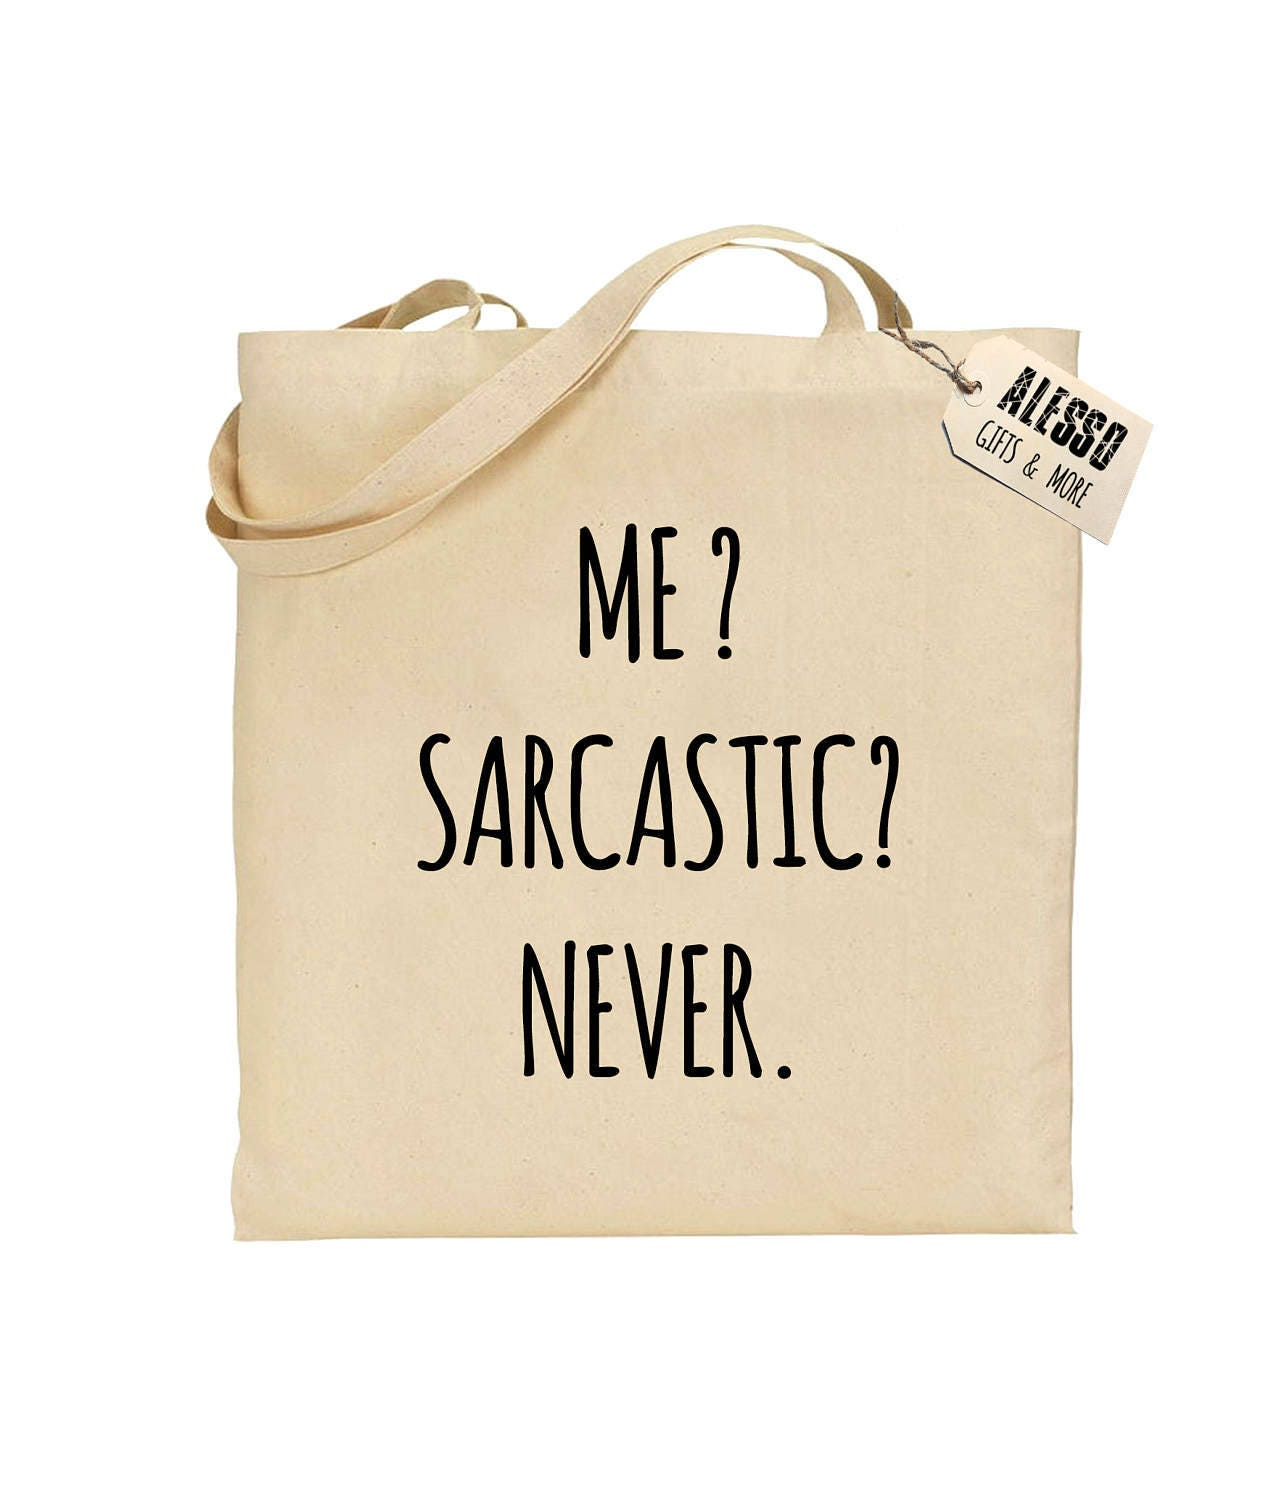 ME SARCASTIC NEVER funny tote bag gift for him gift for her funny bag school bag shopping bag custom tote personalised cotton bag